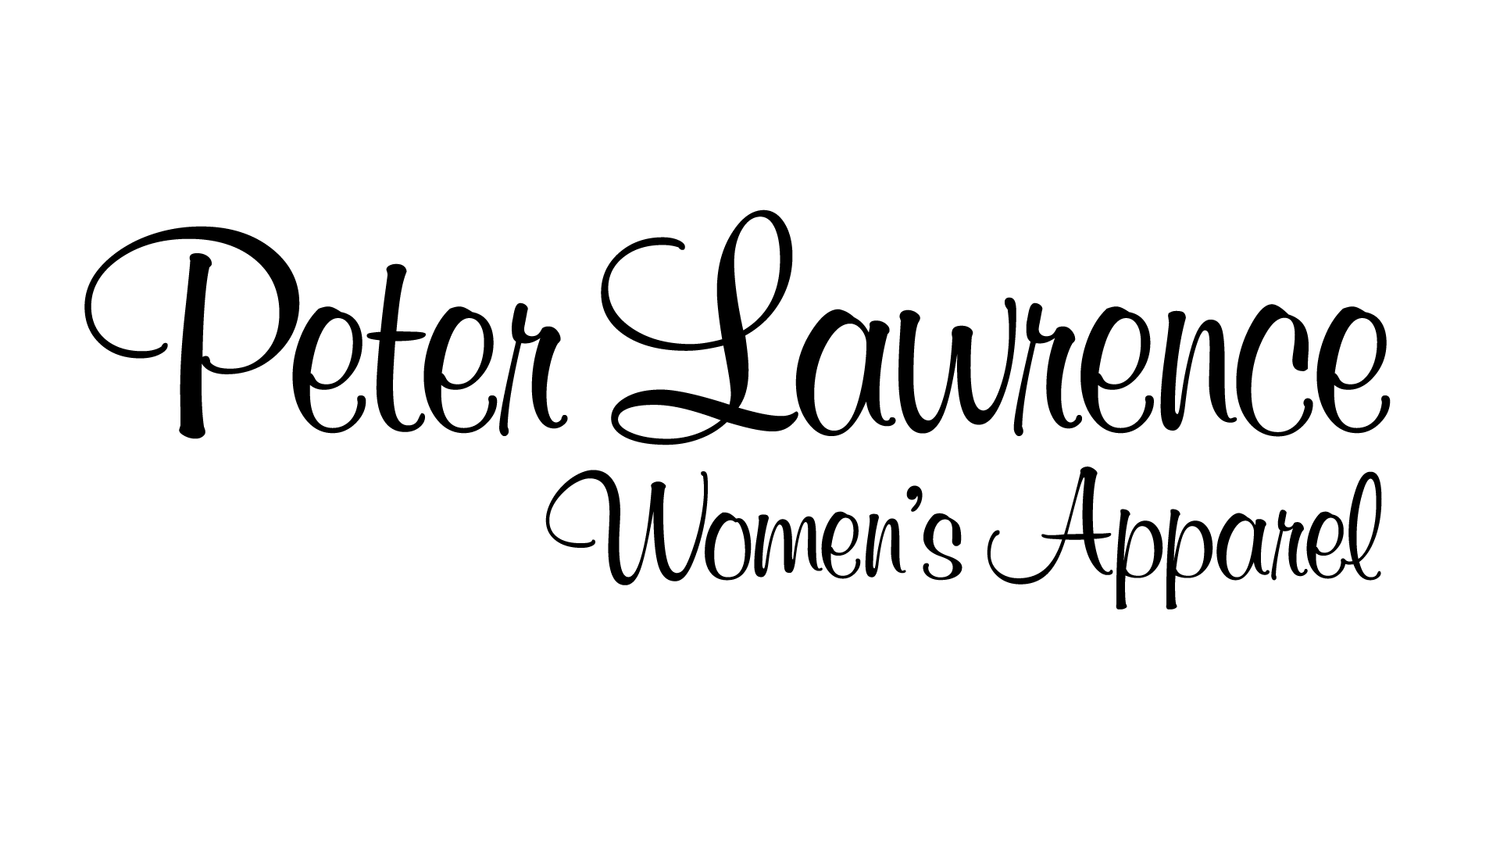 Peter Lawrence Women's Apparel